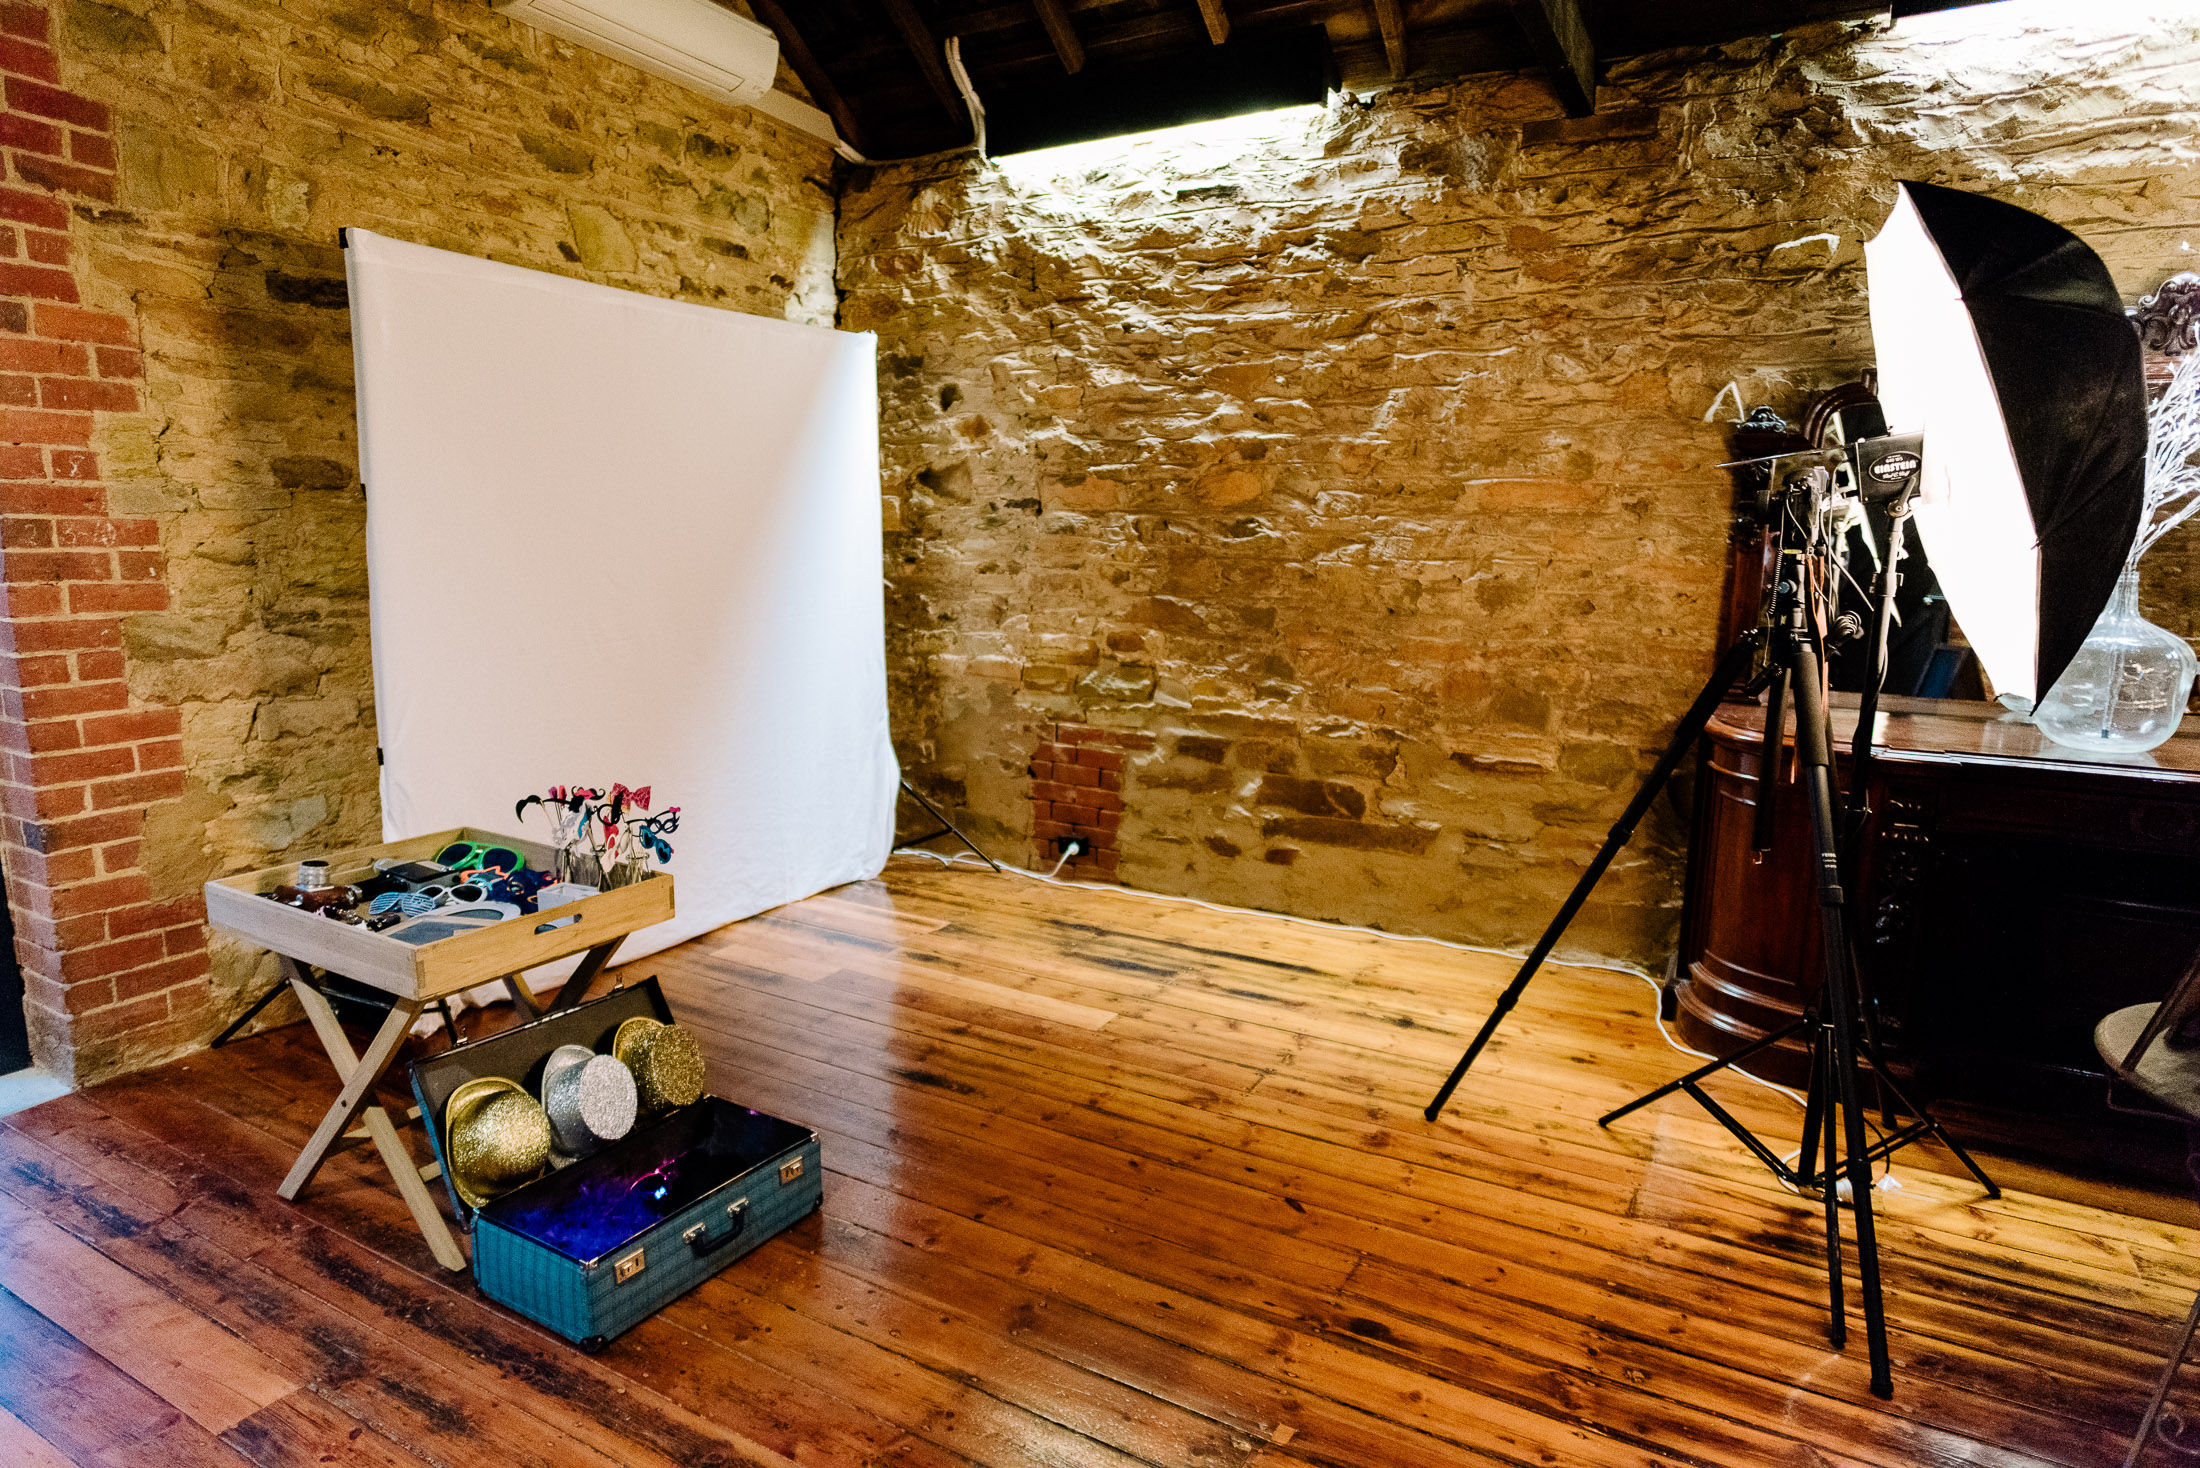 Chateau Dore Photo Booth by Justin and Jim Photographers - Bendigo